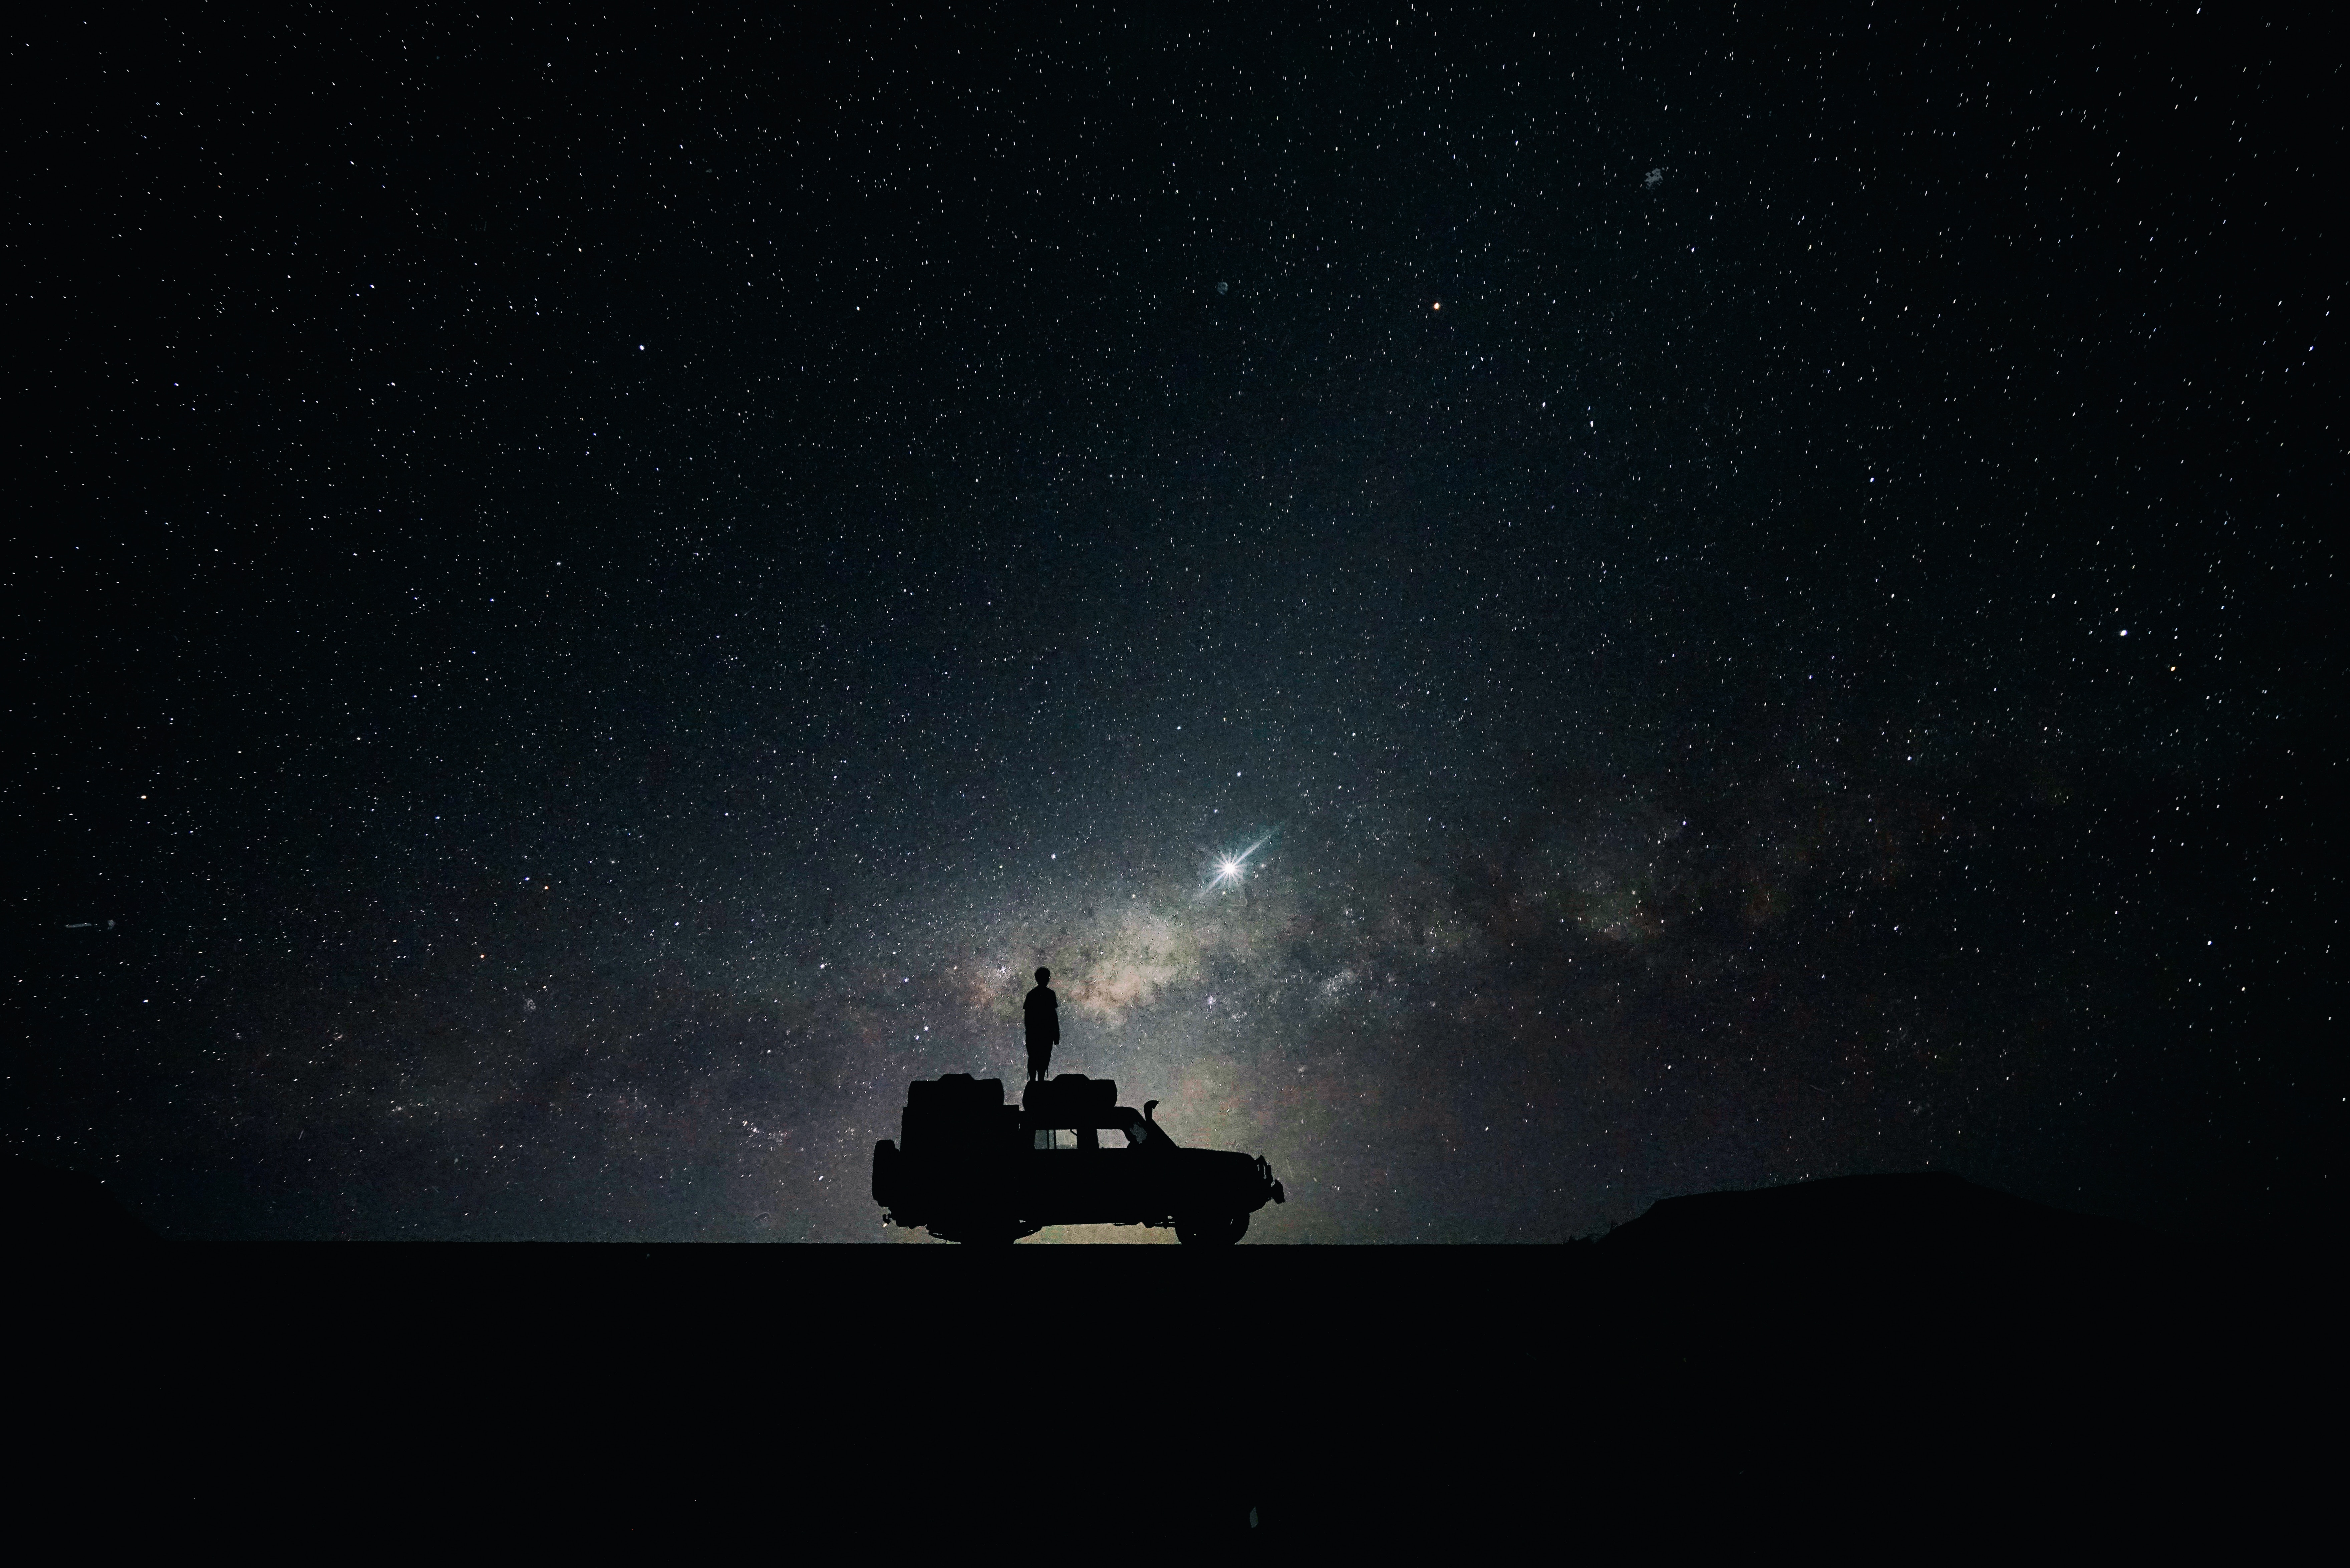 """Meteors, also known as """"shooting stars"""" and """"falling stars,"""" are created when bits of debris from asteroids and comets enter the earth's atmosphere and begin to glow as they heat up from friction."""